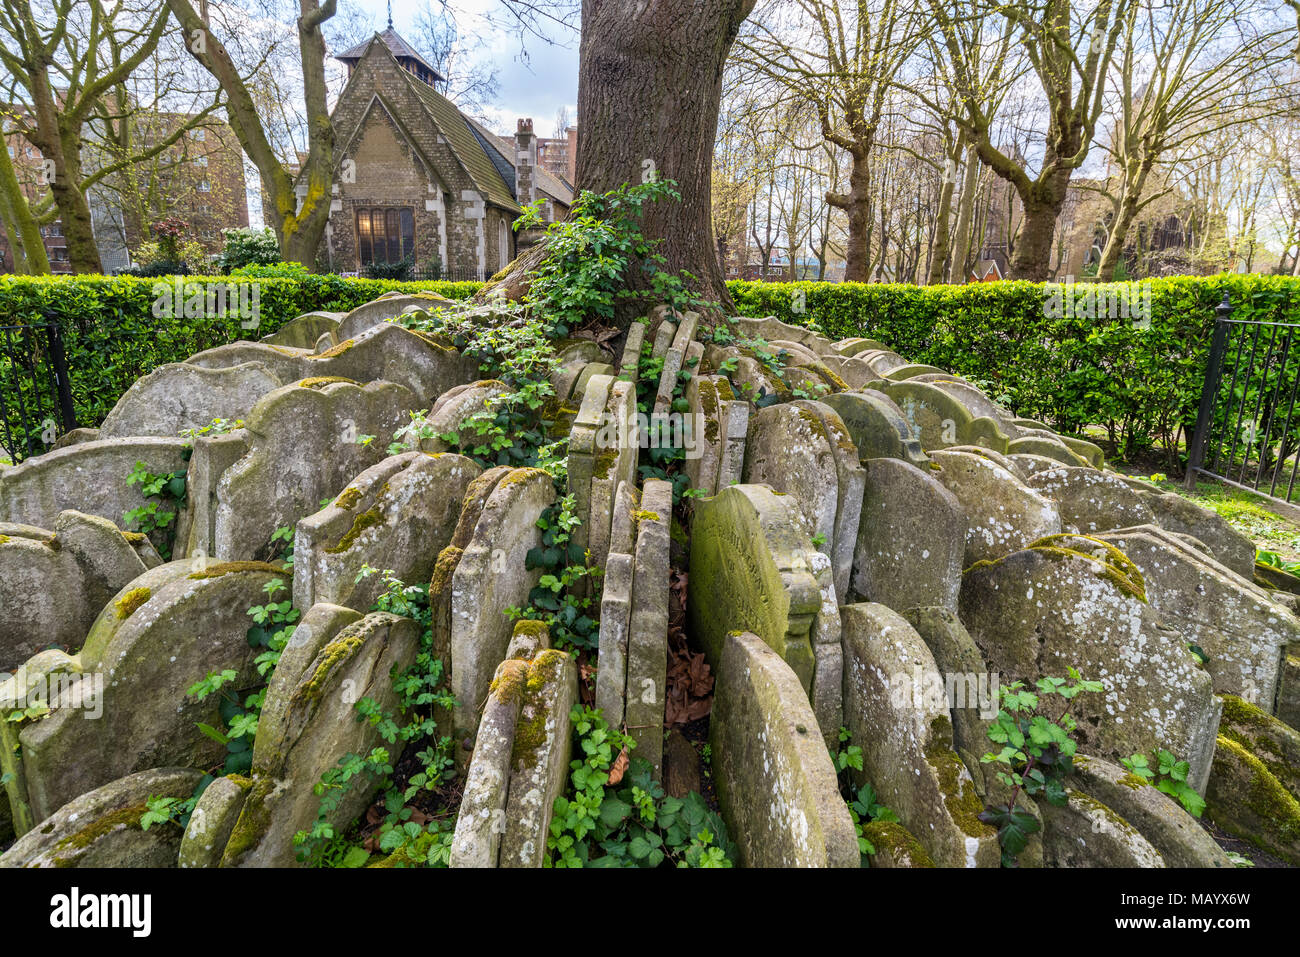 Headstones growing around the Hardy Tree in the churchyard of St Pancras Gardens, London, UK - Stock Image